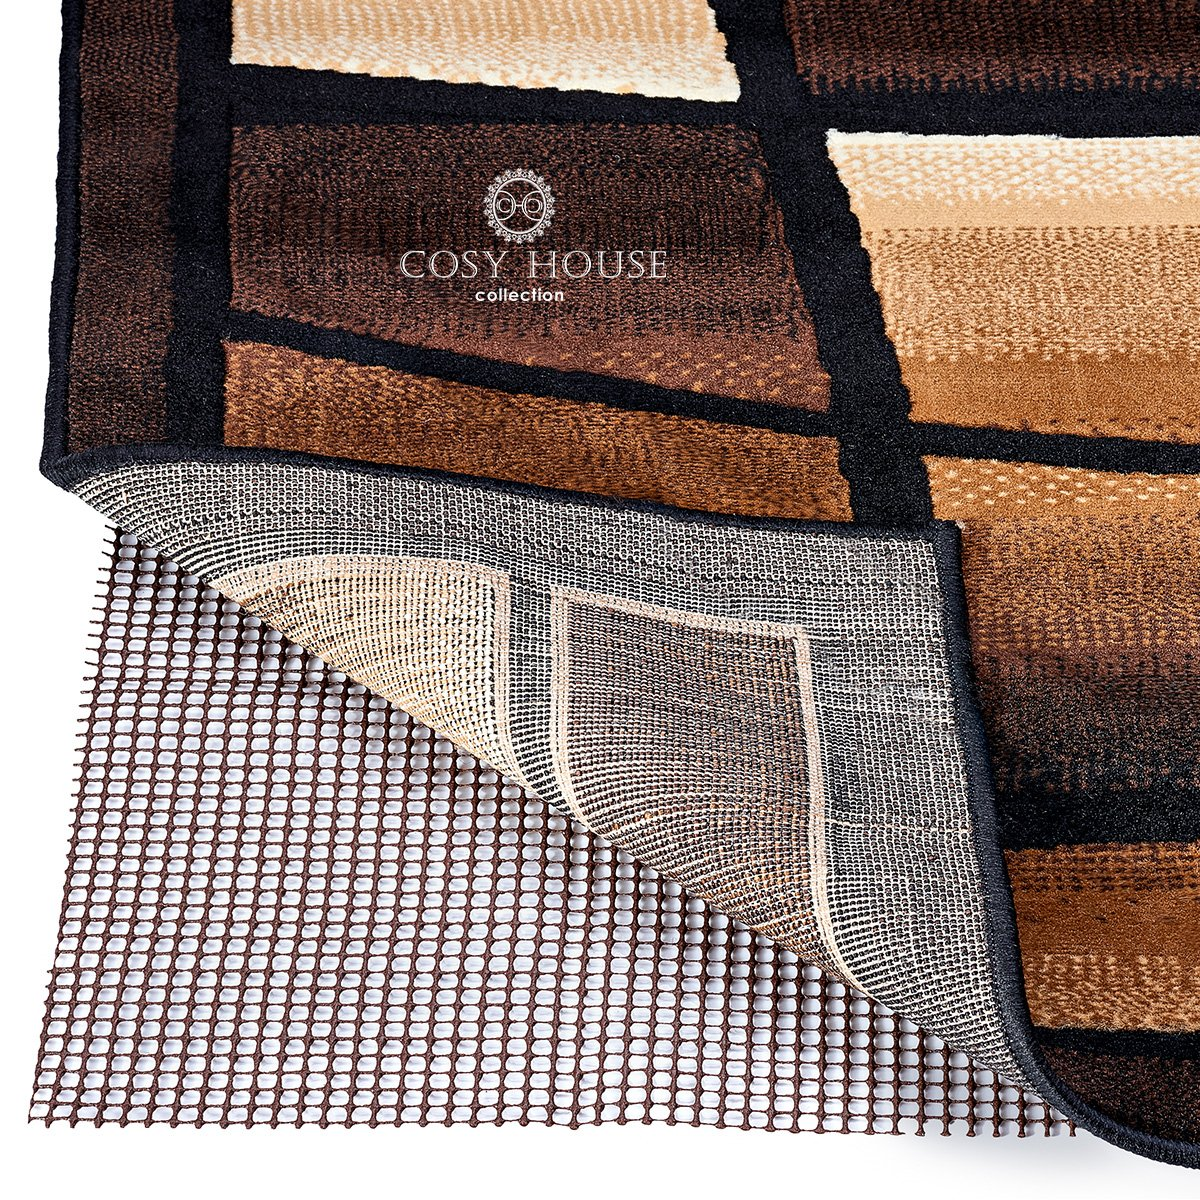 Thick Rug Gripper for Firm Hold on Oriental 5/' x 7/' Tile or Cement 5 x 7 Fully Washable Wood Tile or Cement Cosy House Collection Non Slip Area Rug Pad Traditional or Contemporary Rugs /& Door Mats for any Hard Surface Floors